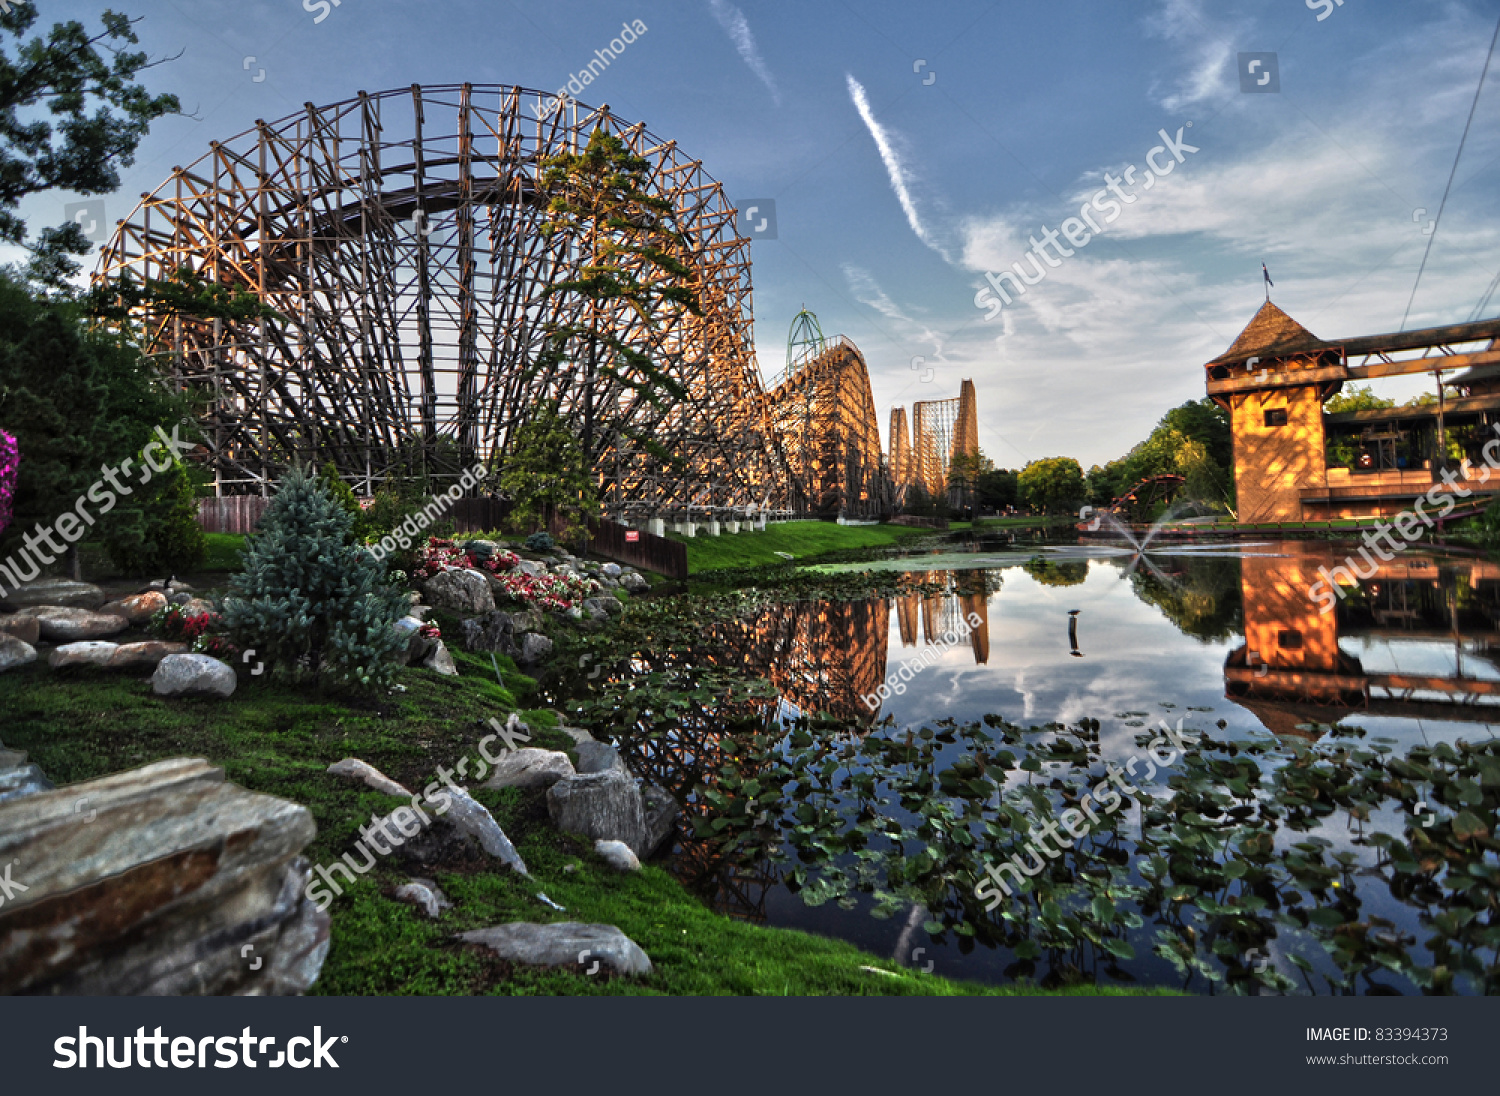 Side View Of A Wooden Roller Coaster Being Mirrored In A ...